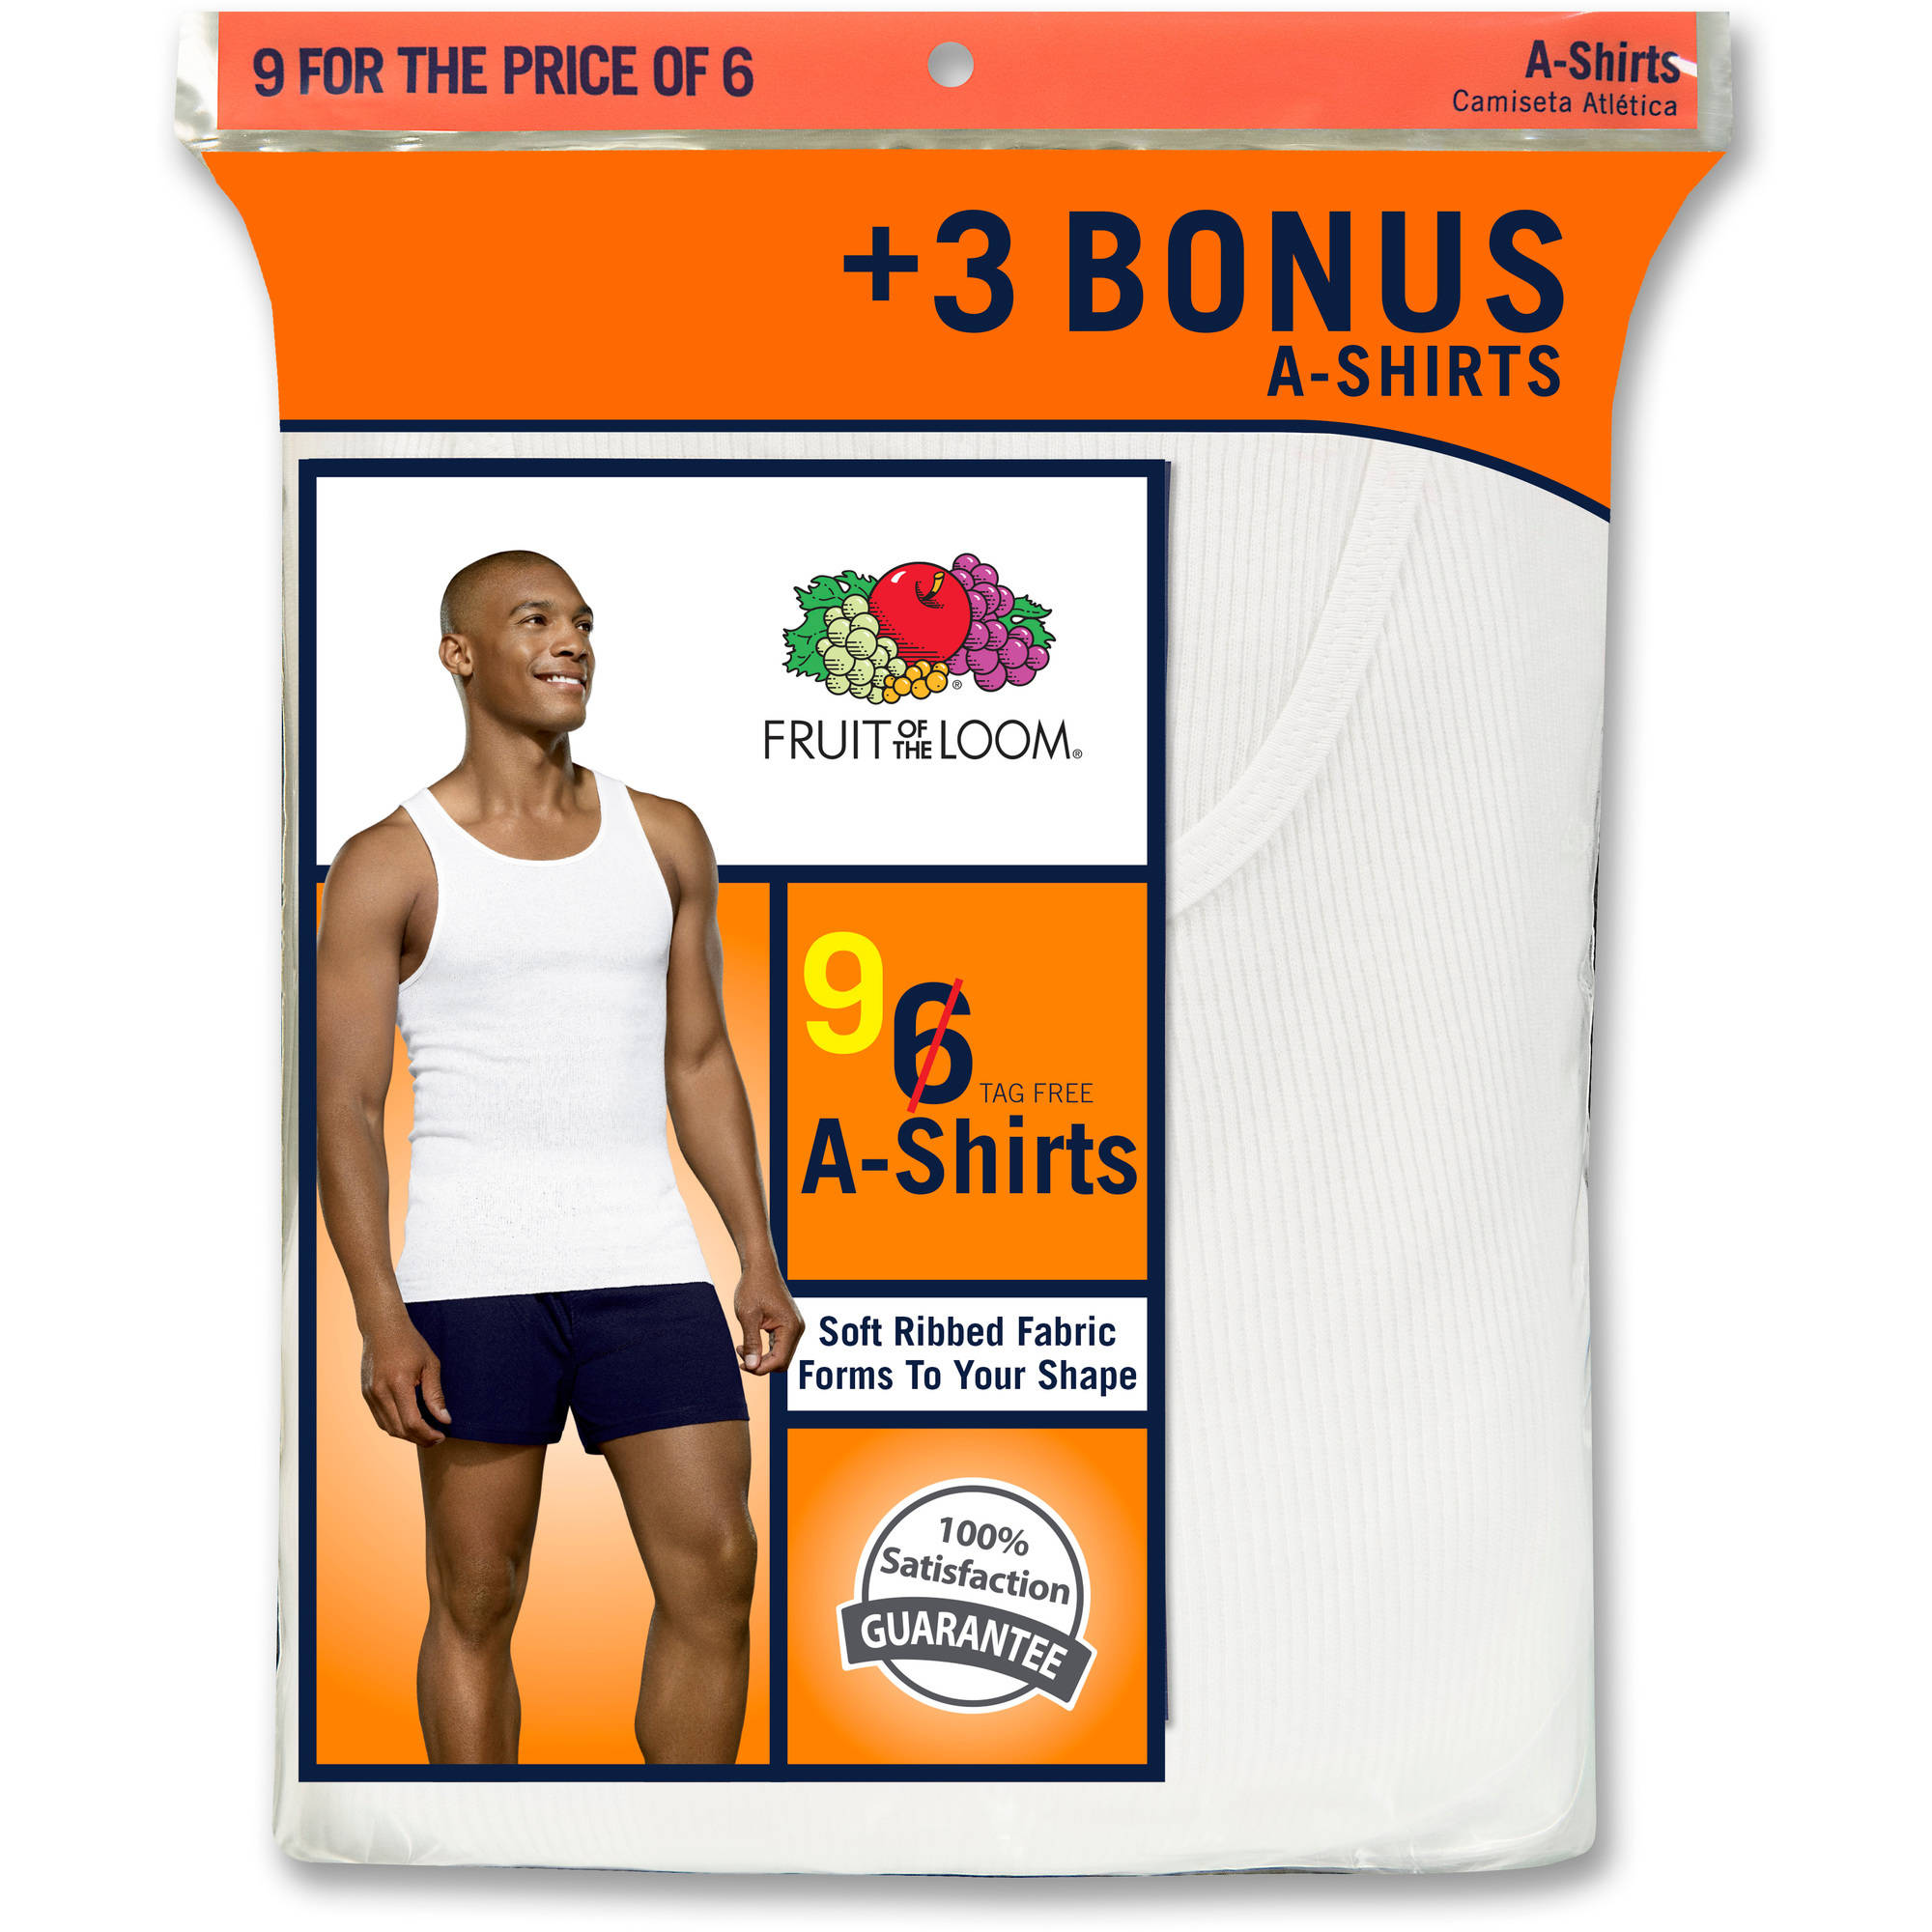 Bonus Pack! Fruit of the Loom Men's 6+3 Free White A-Shirts